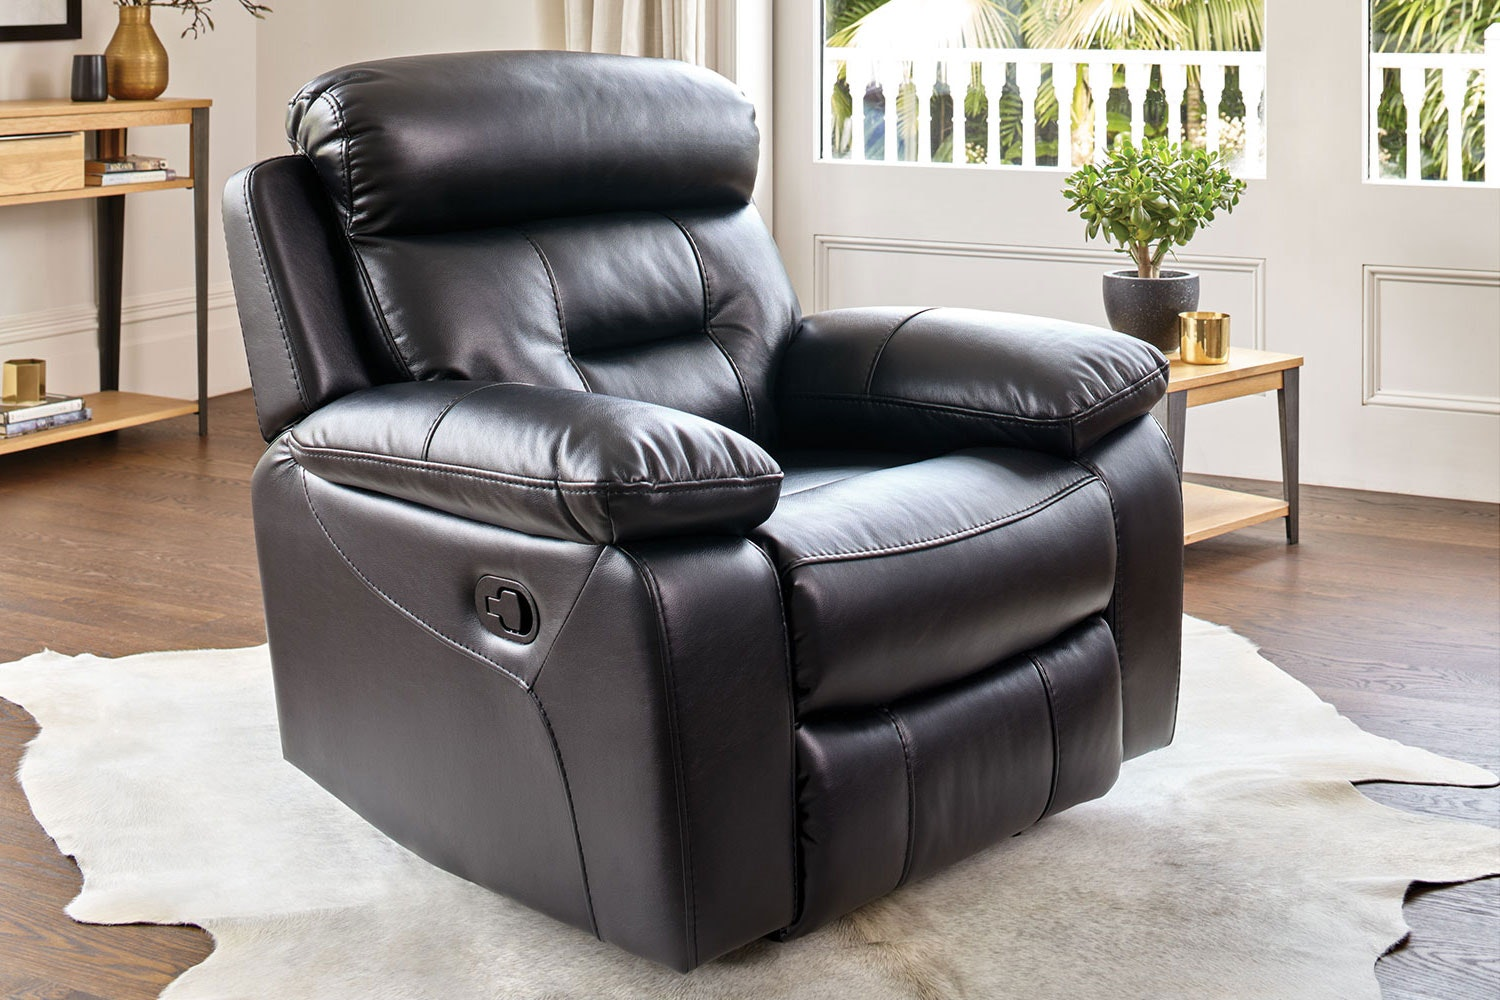 Kimberley Fabric Recliner Chair